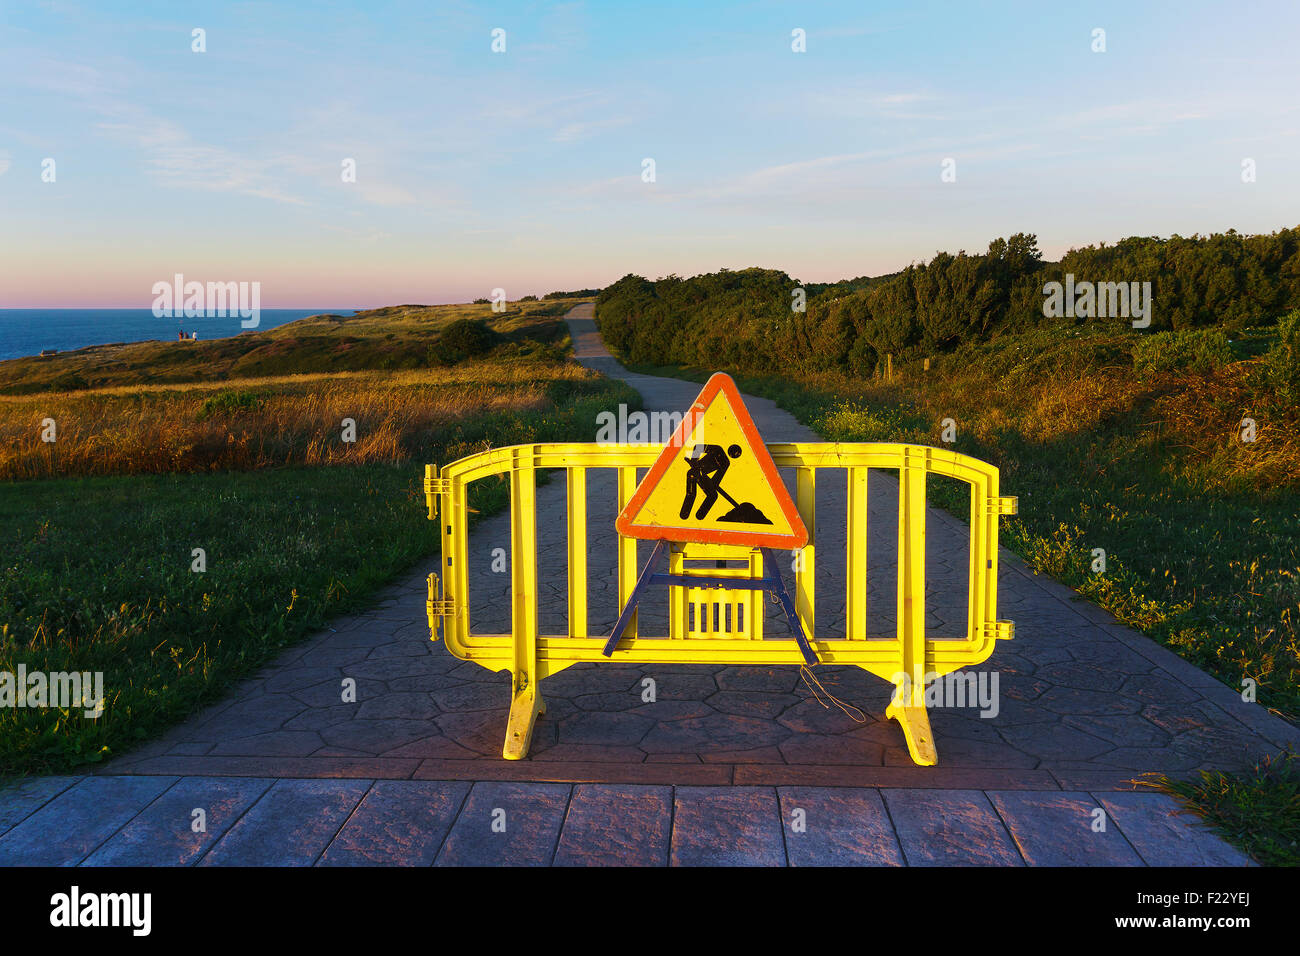 work in progress sign on path - Stock Image